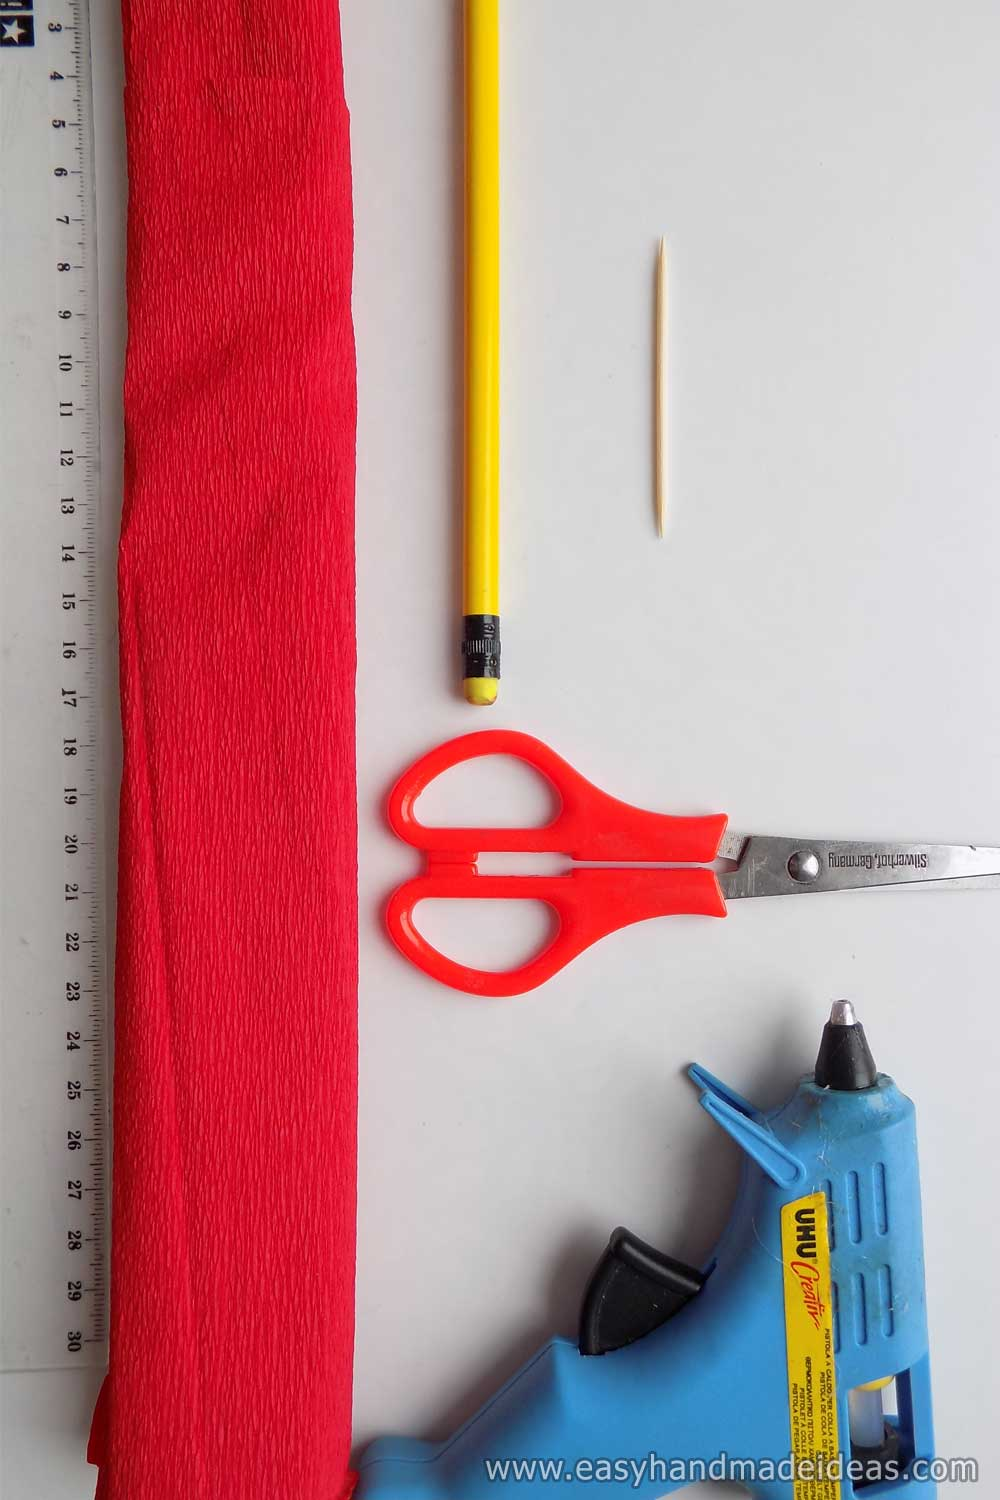 Materials and Tools for Crepe Paper Rose